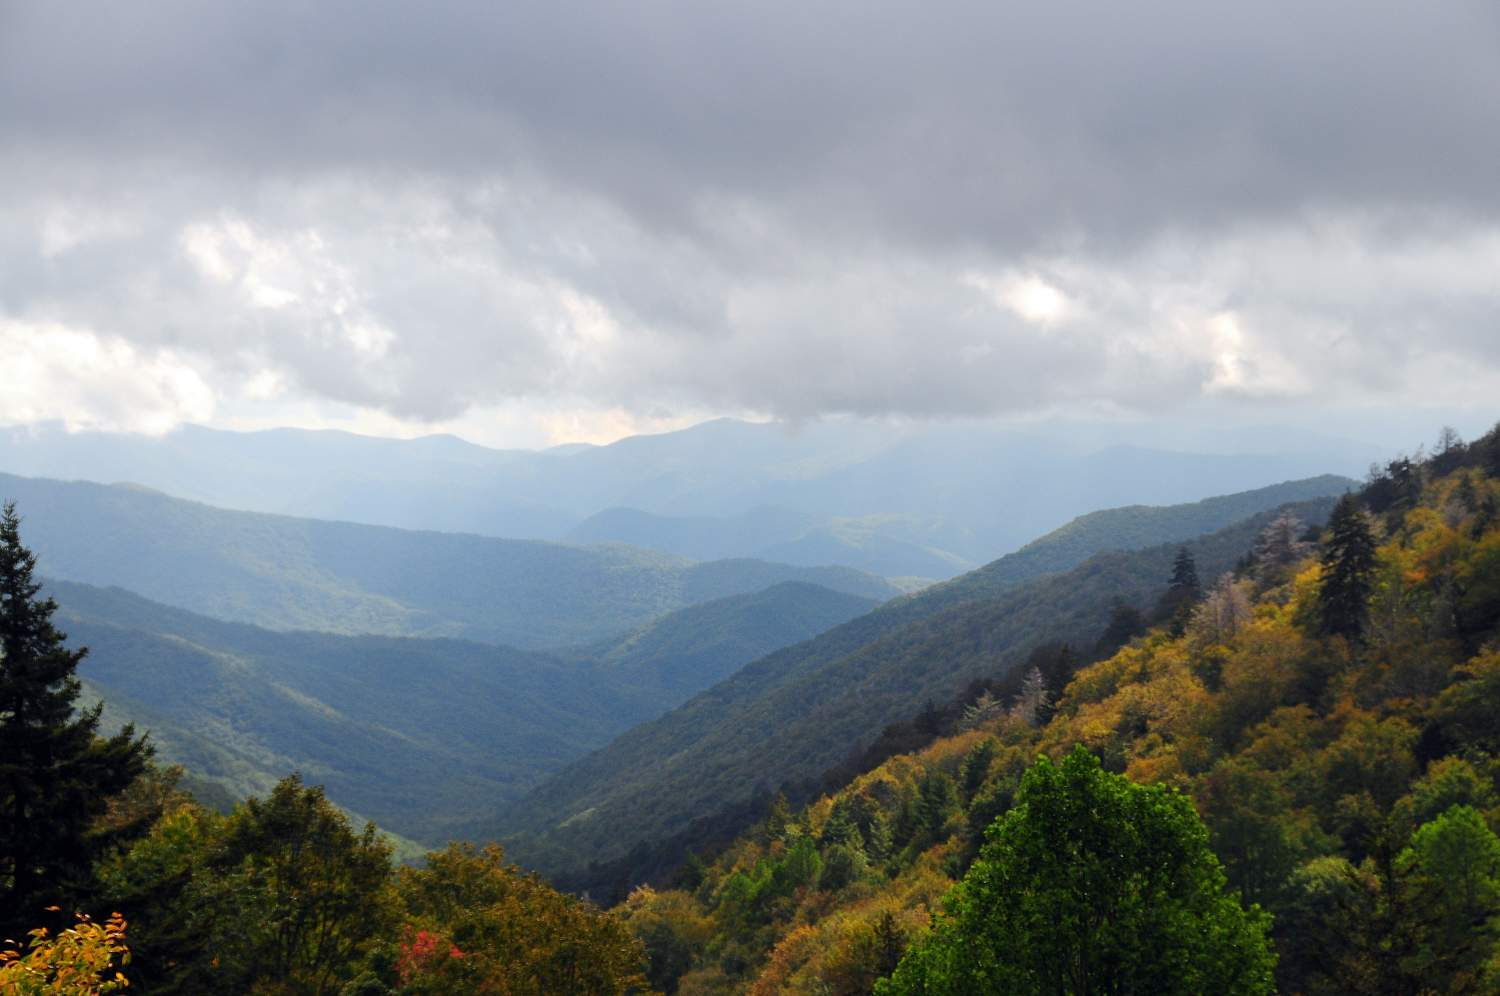 Fall color from Luftee Overlook on Newfound Gap Road